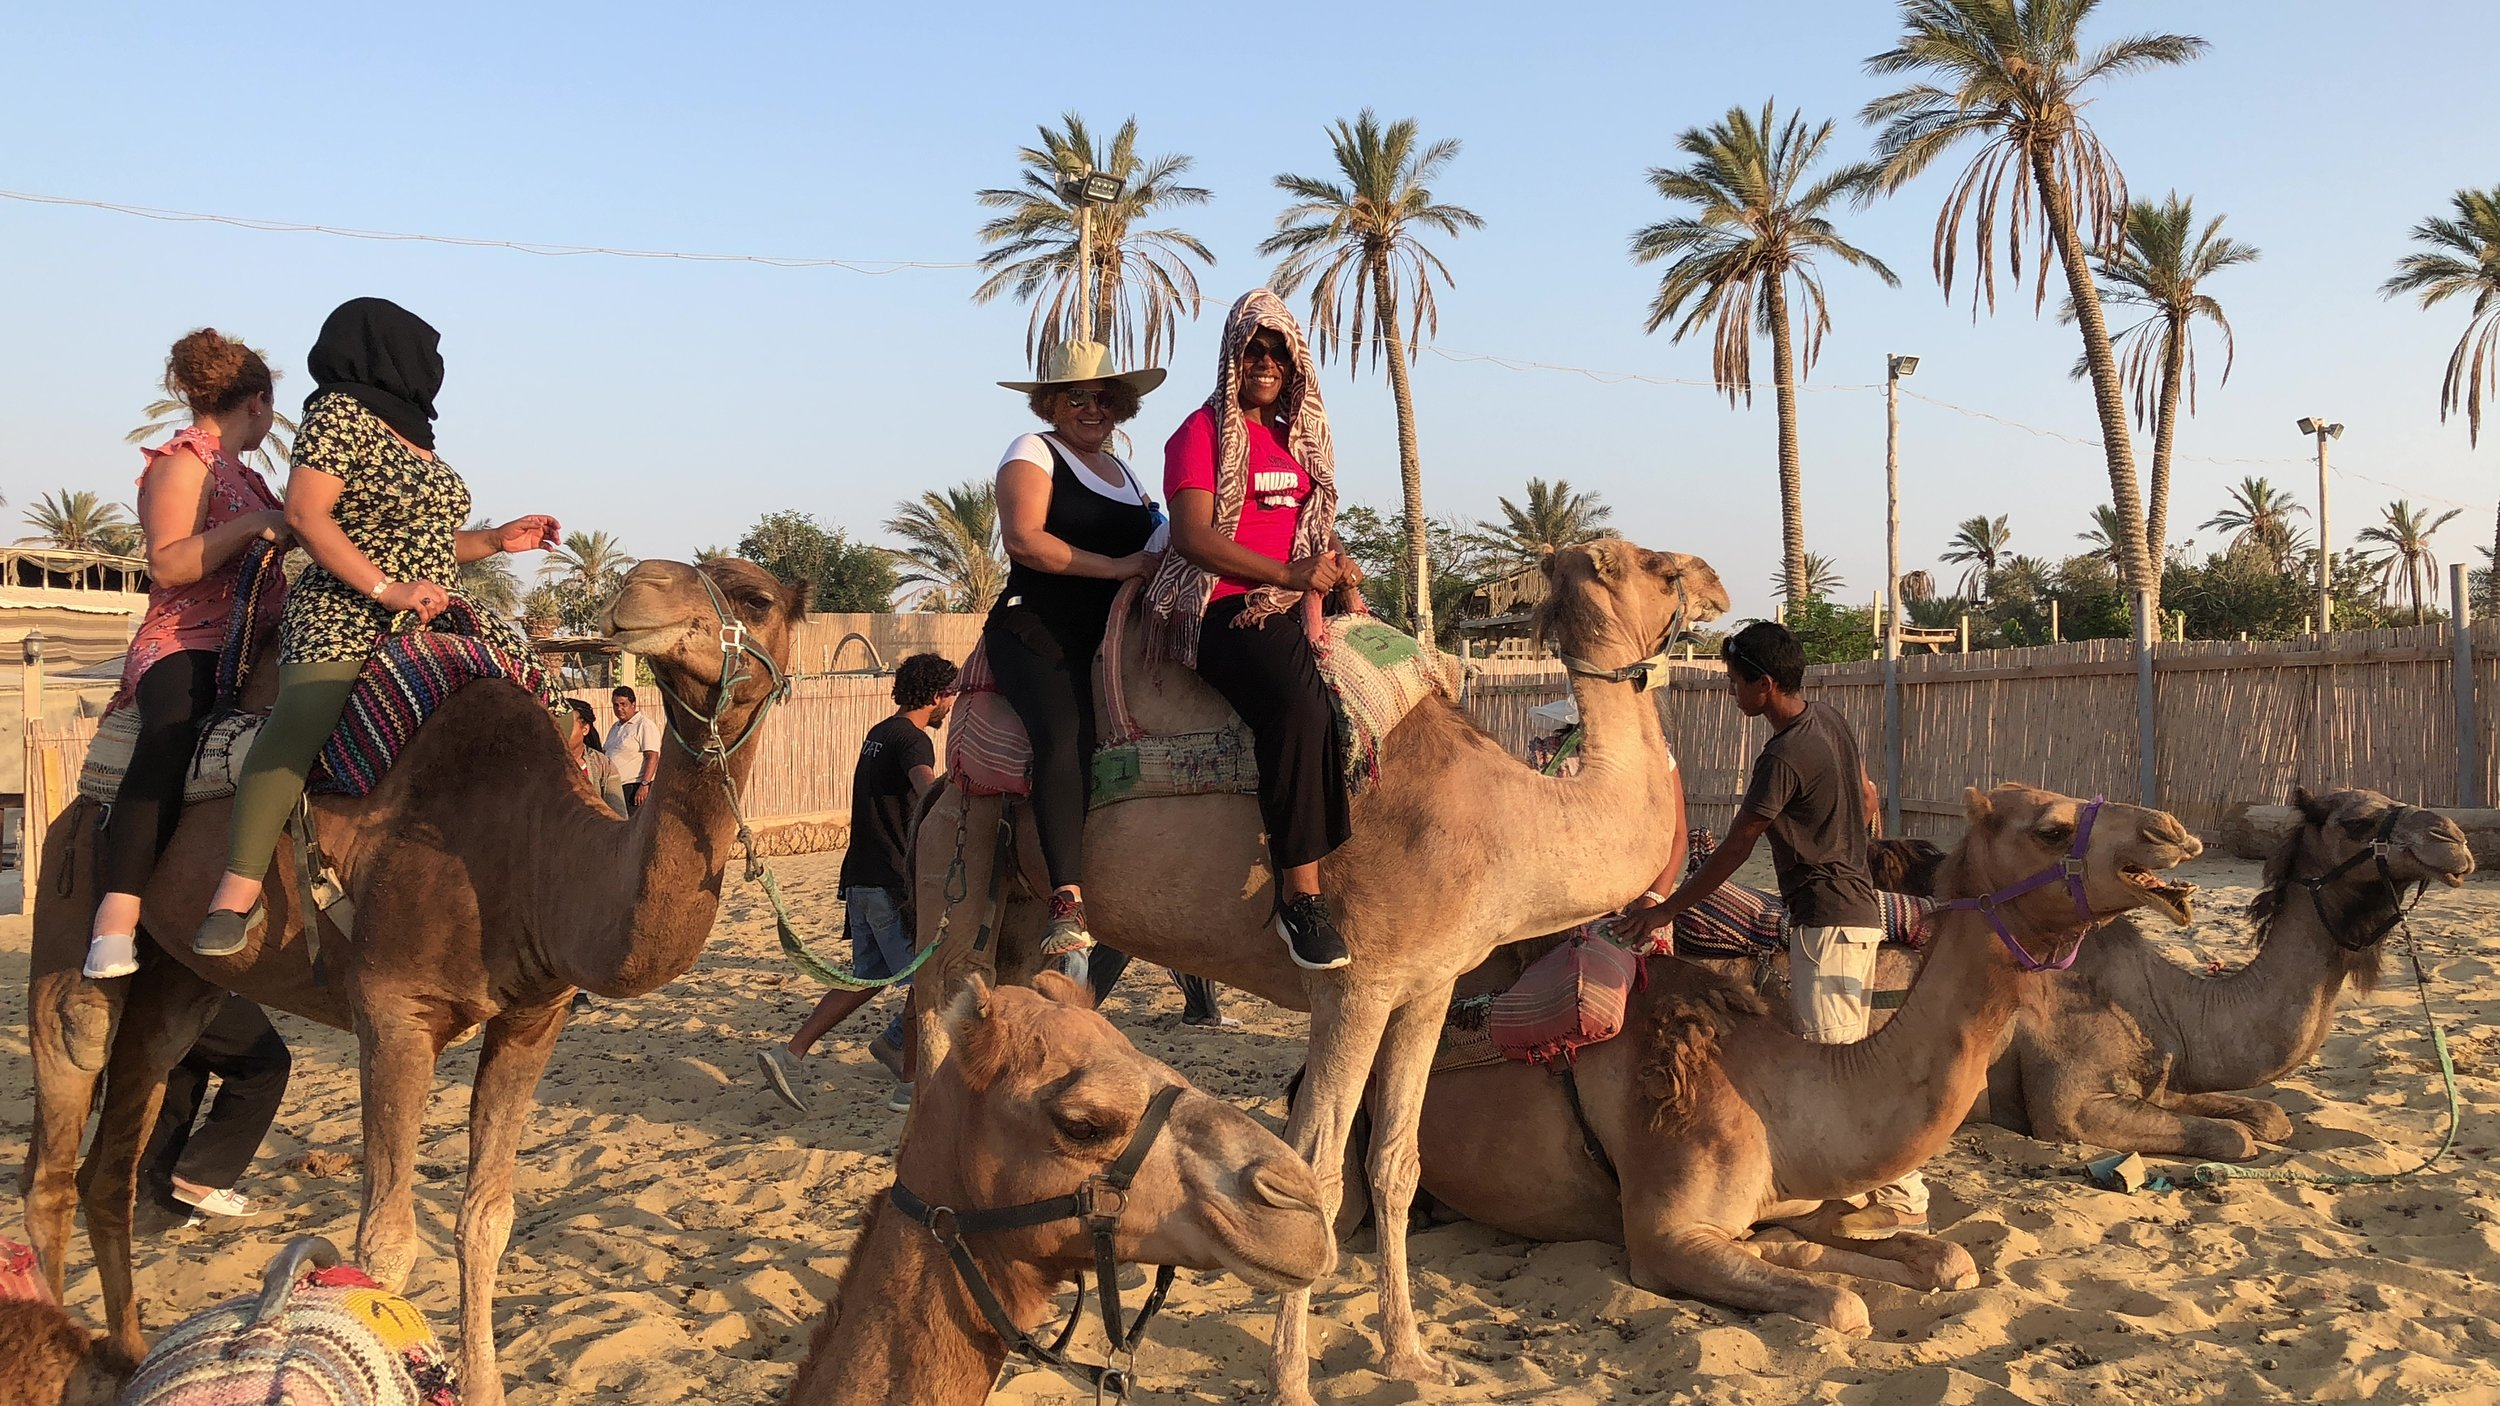 One of our groups getting ready to go for a Camel ride in the desert of Judea